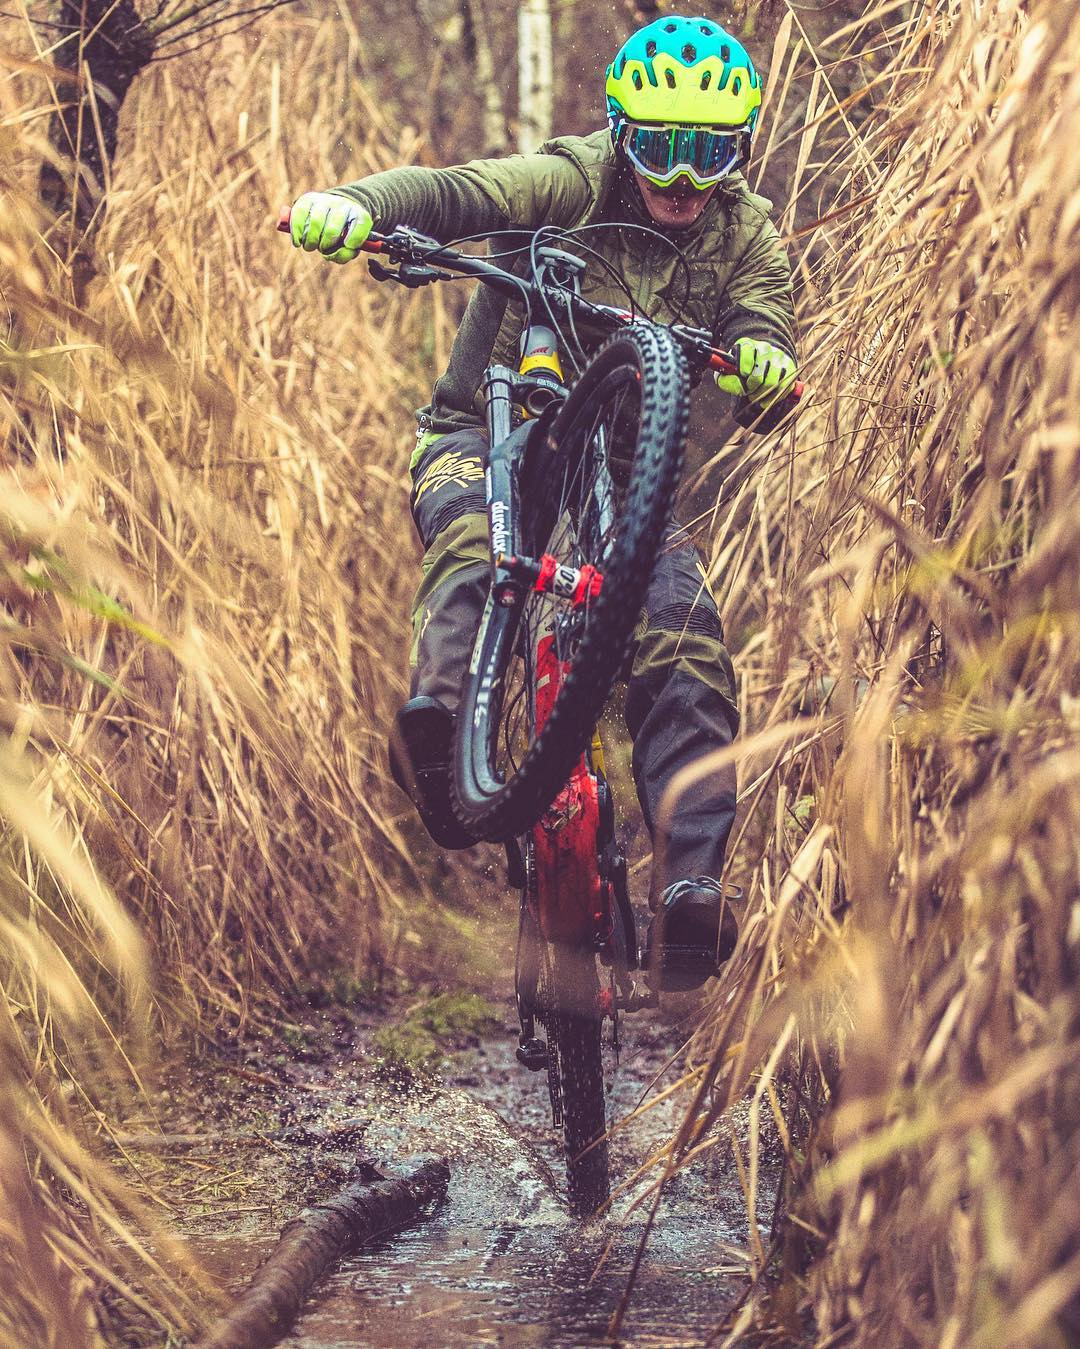 Rushing into the new week! @tschugg23 in effect! 📷 @hdc_m #xduro #mtb #emtb #ebike #nduro #enduro #ride100percent